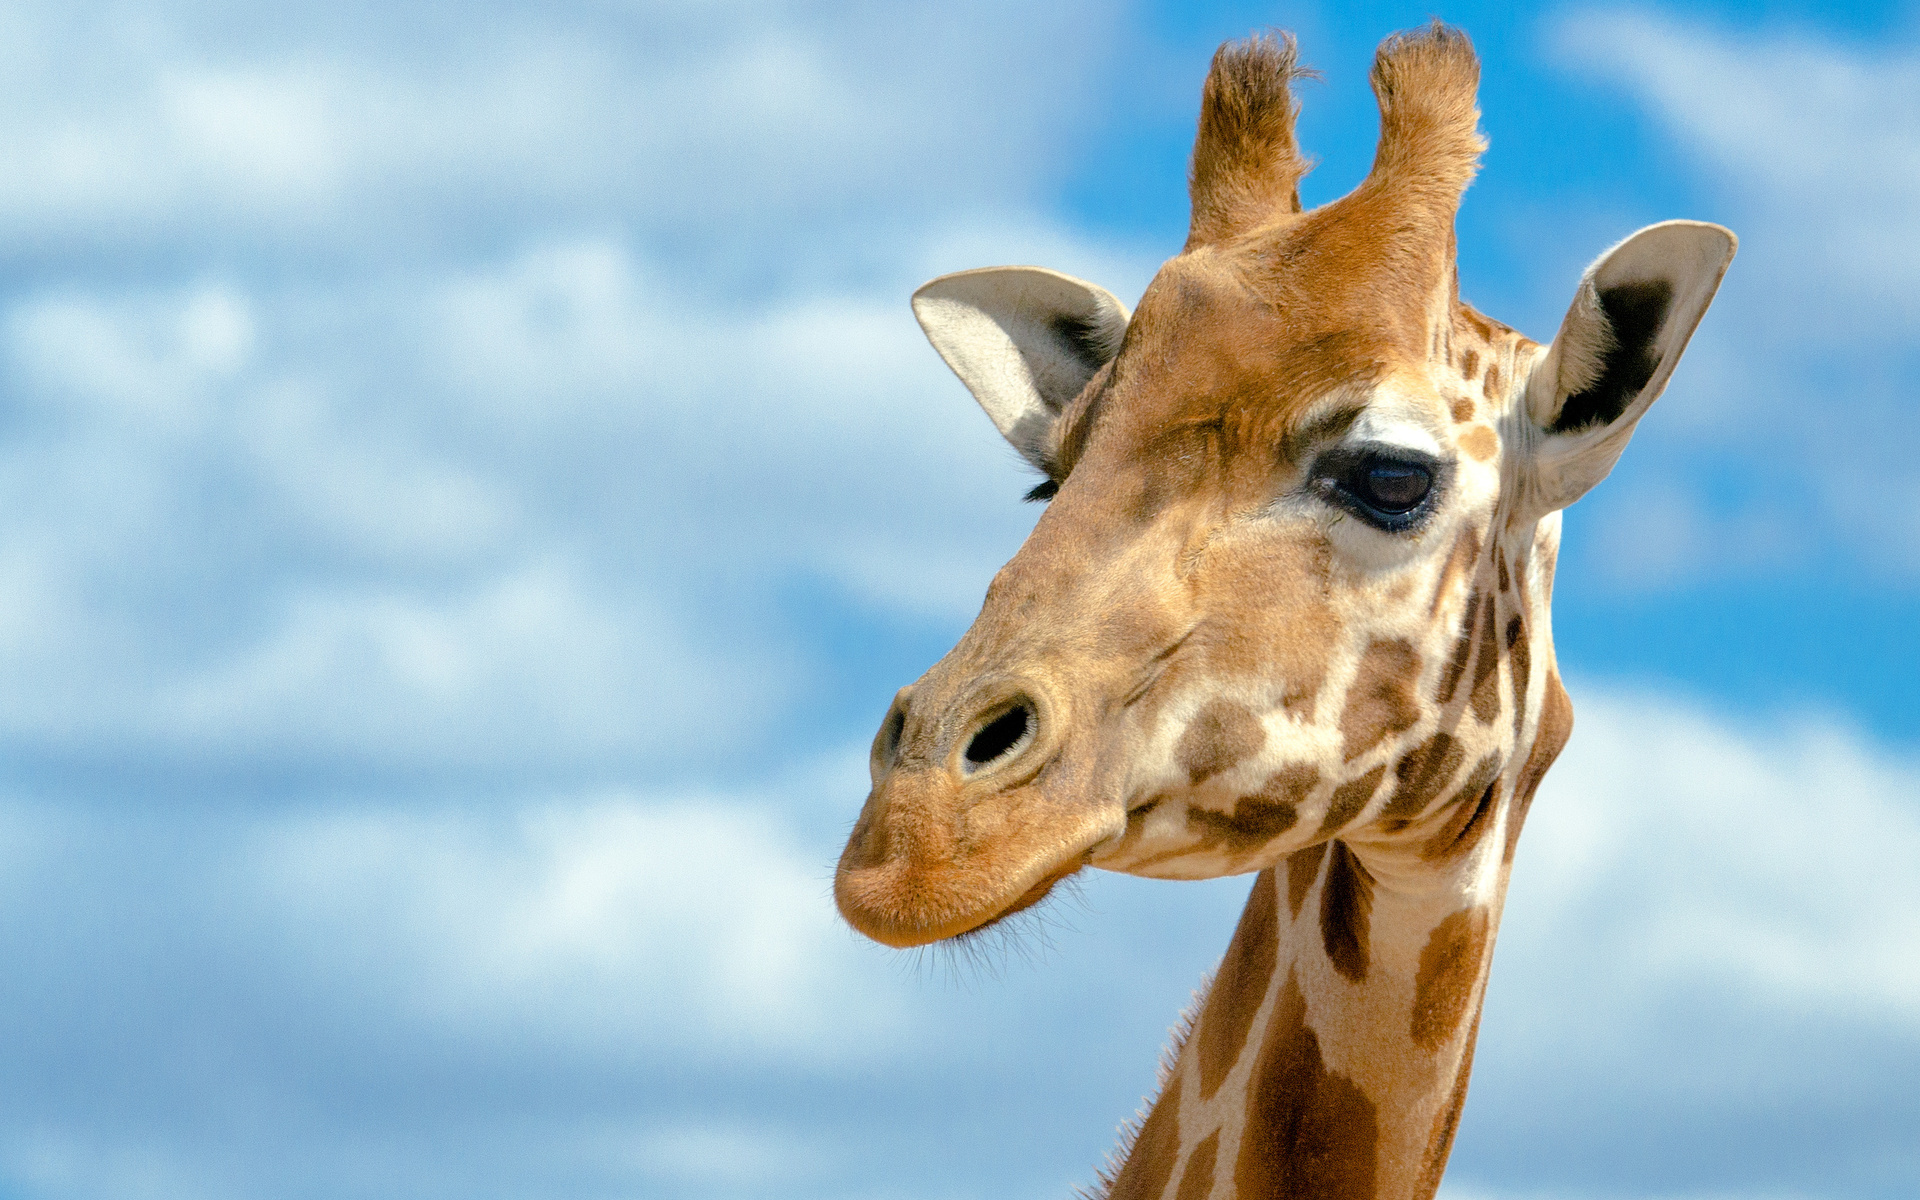 Giraffe HD Wallpaper